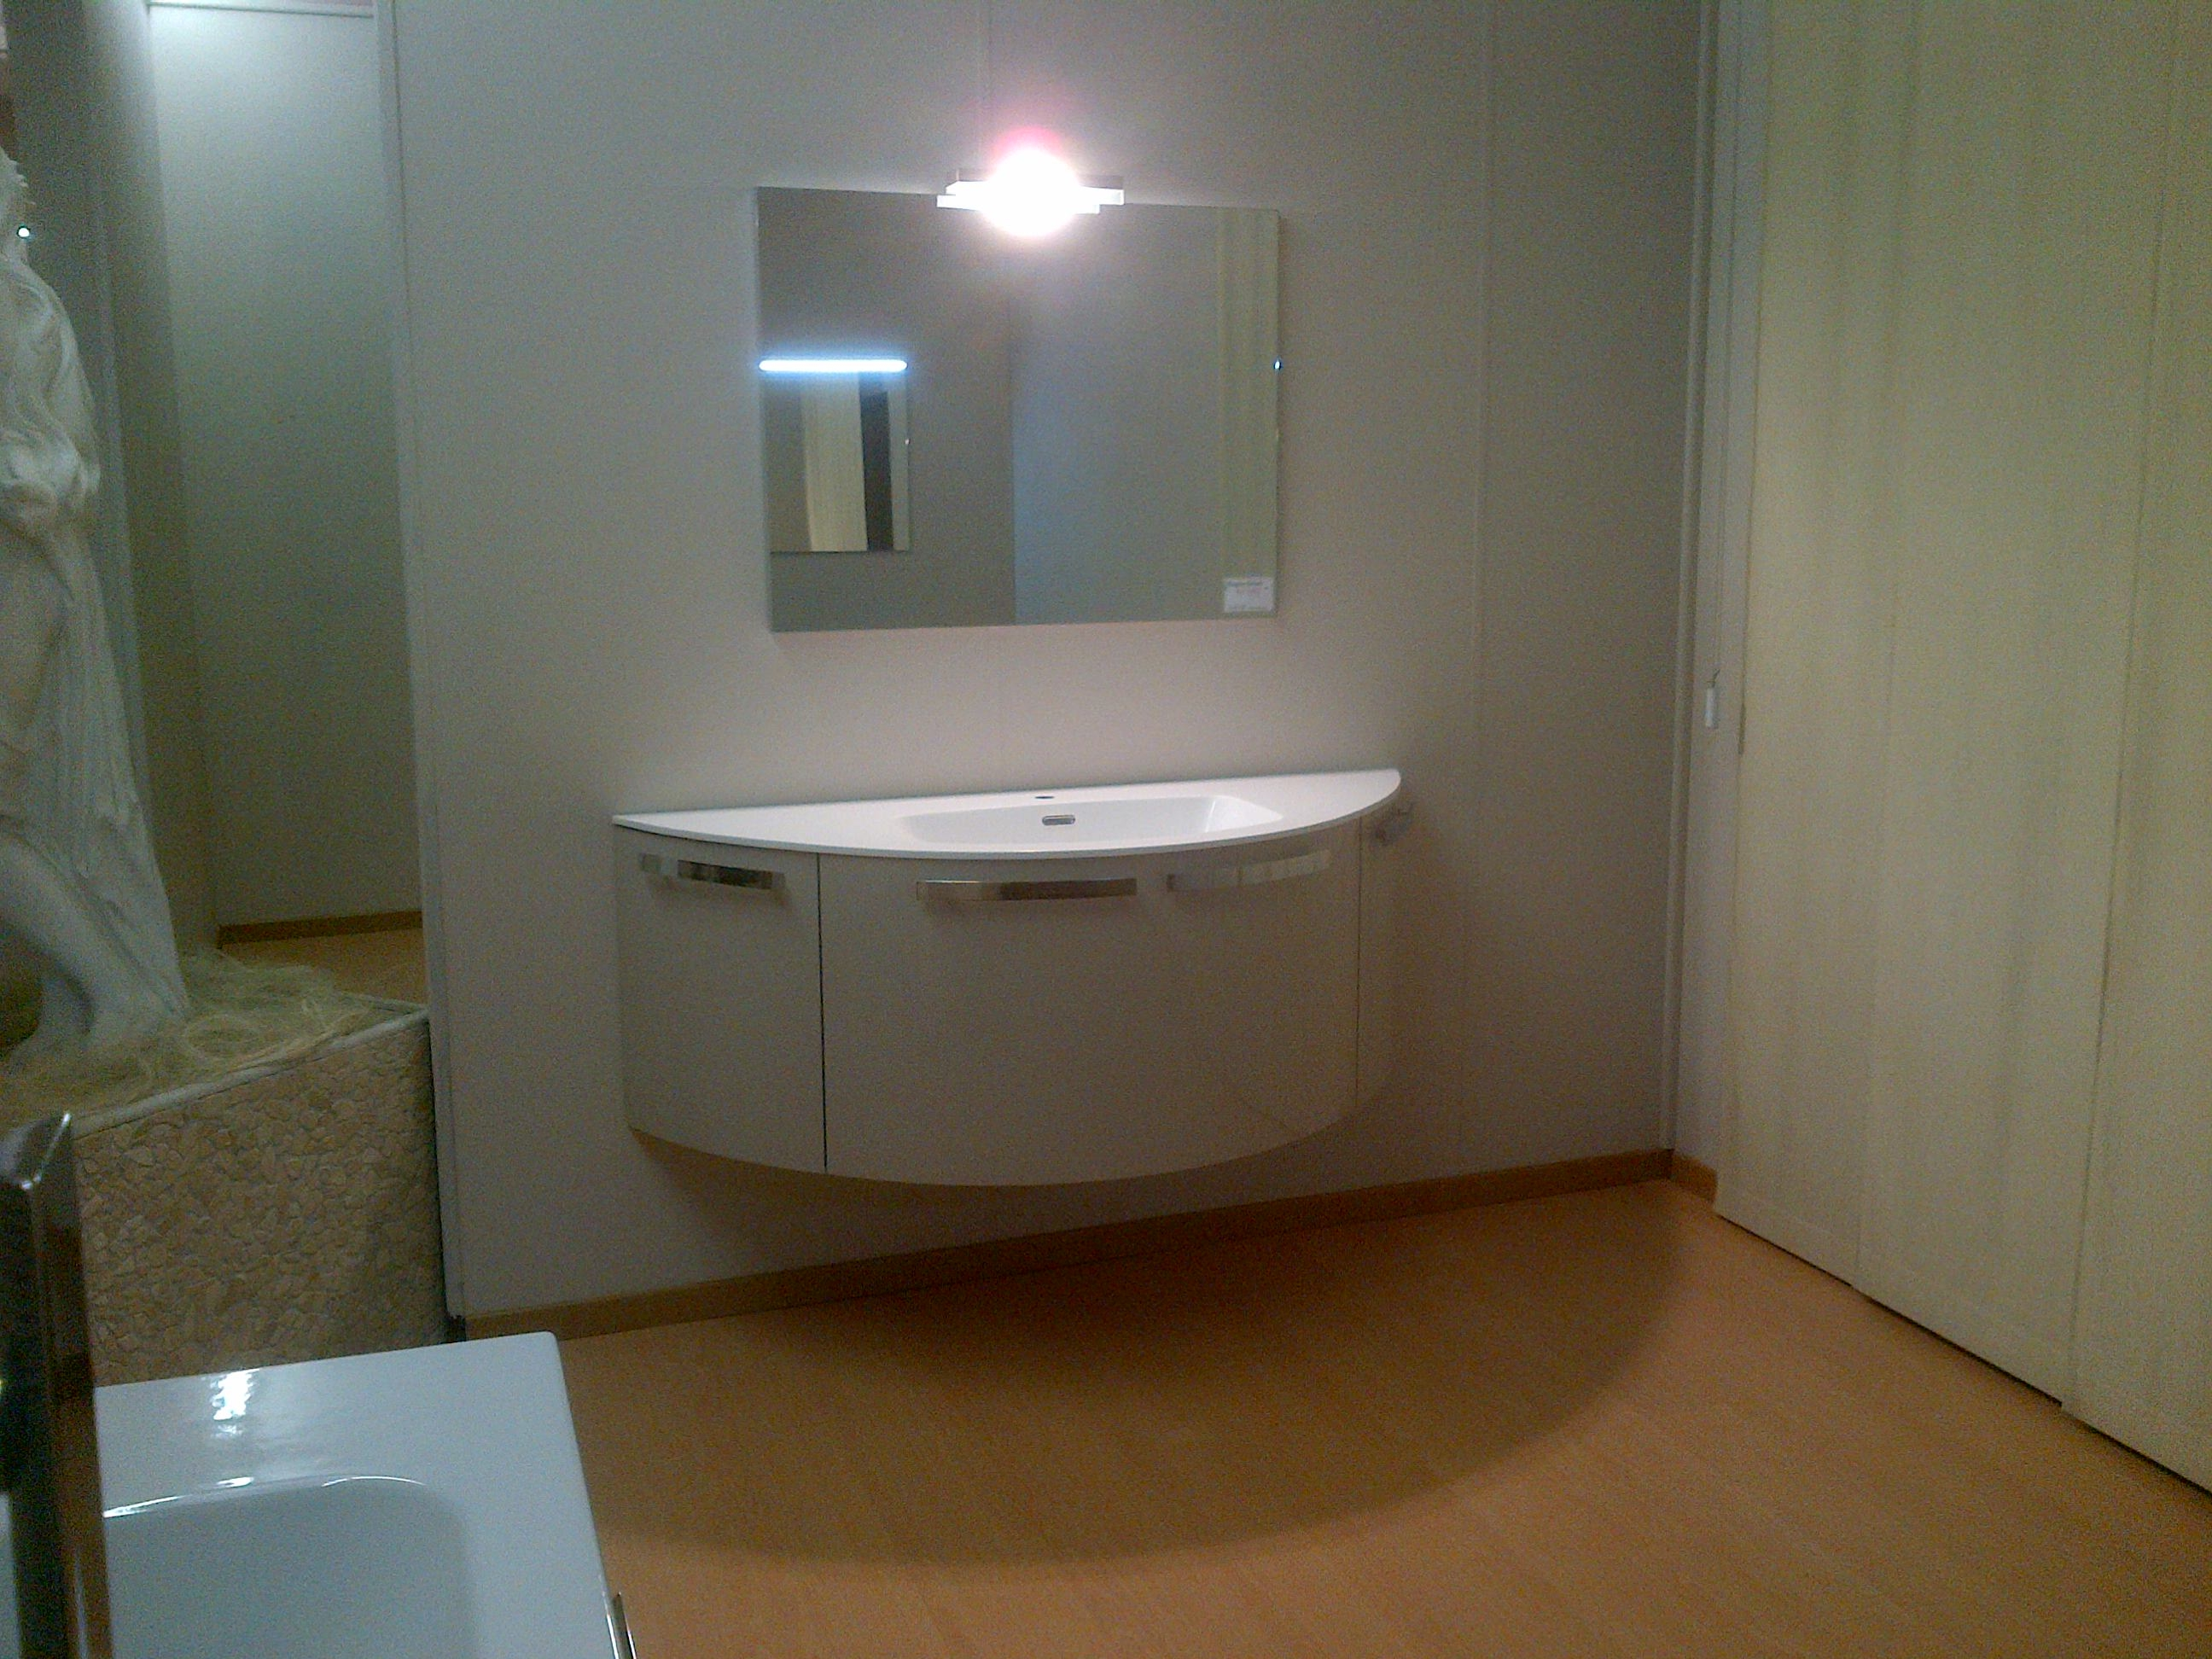 Mobile Bagno Berloni ~ avienix.com for .